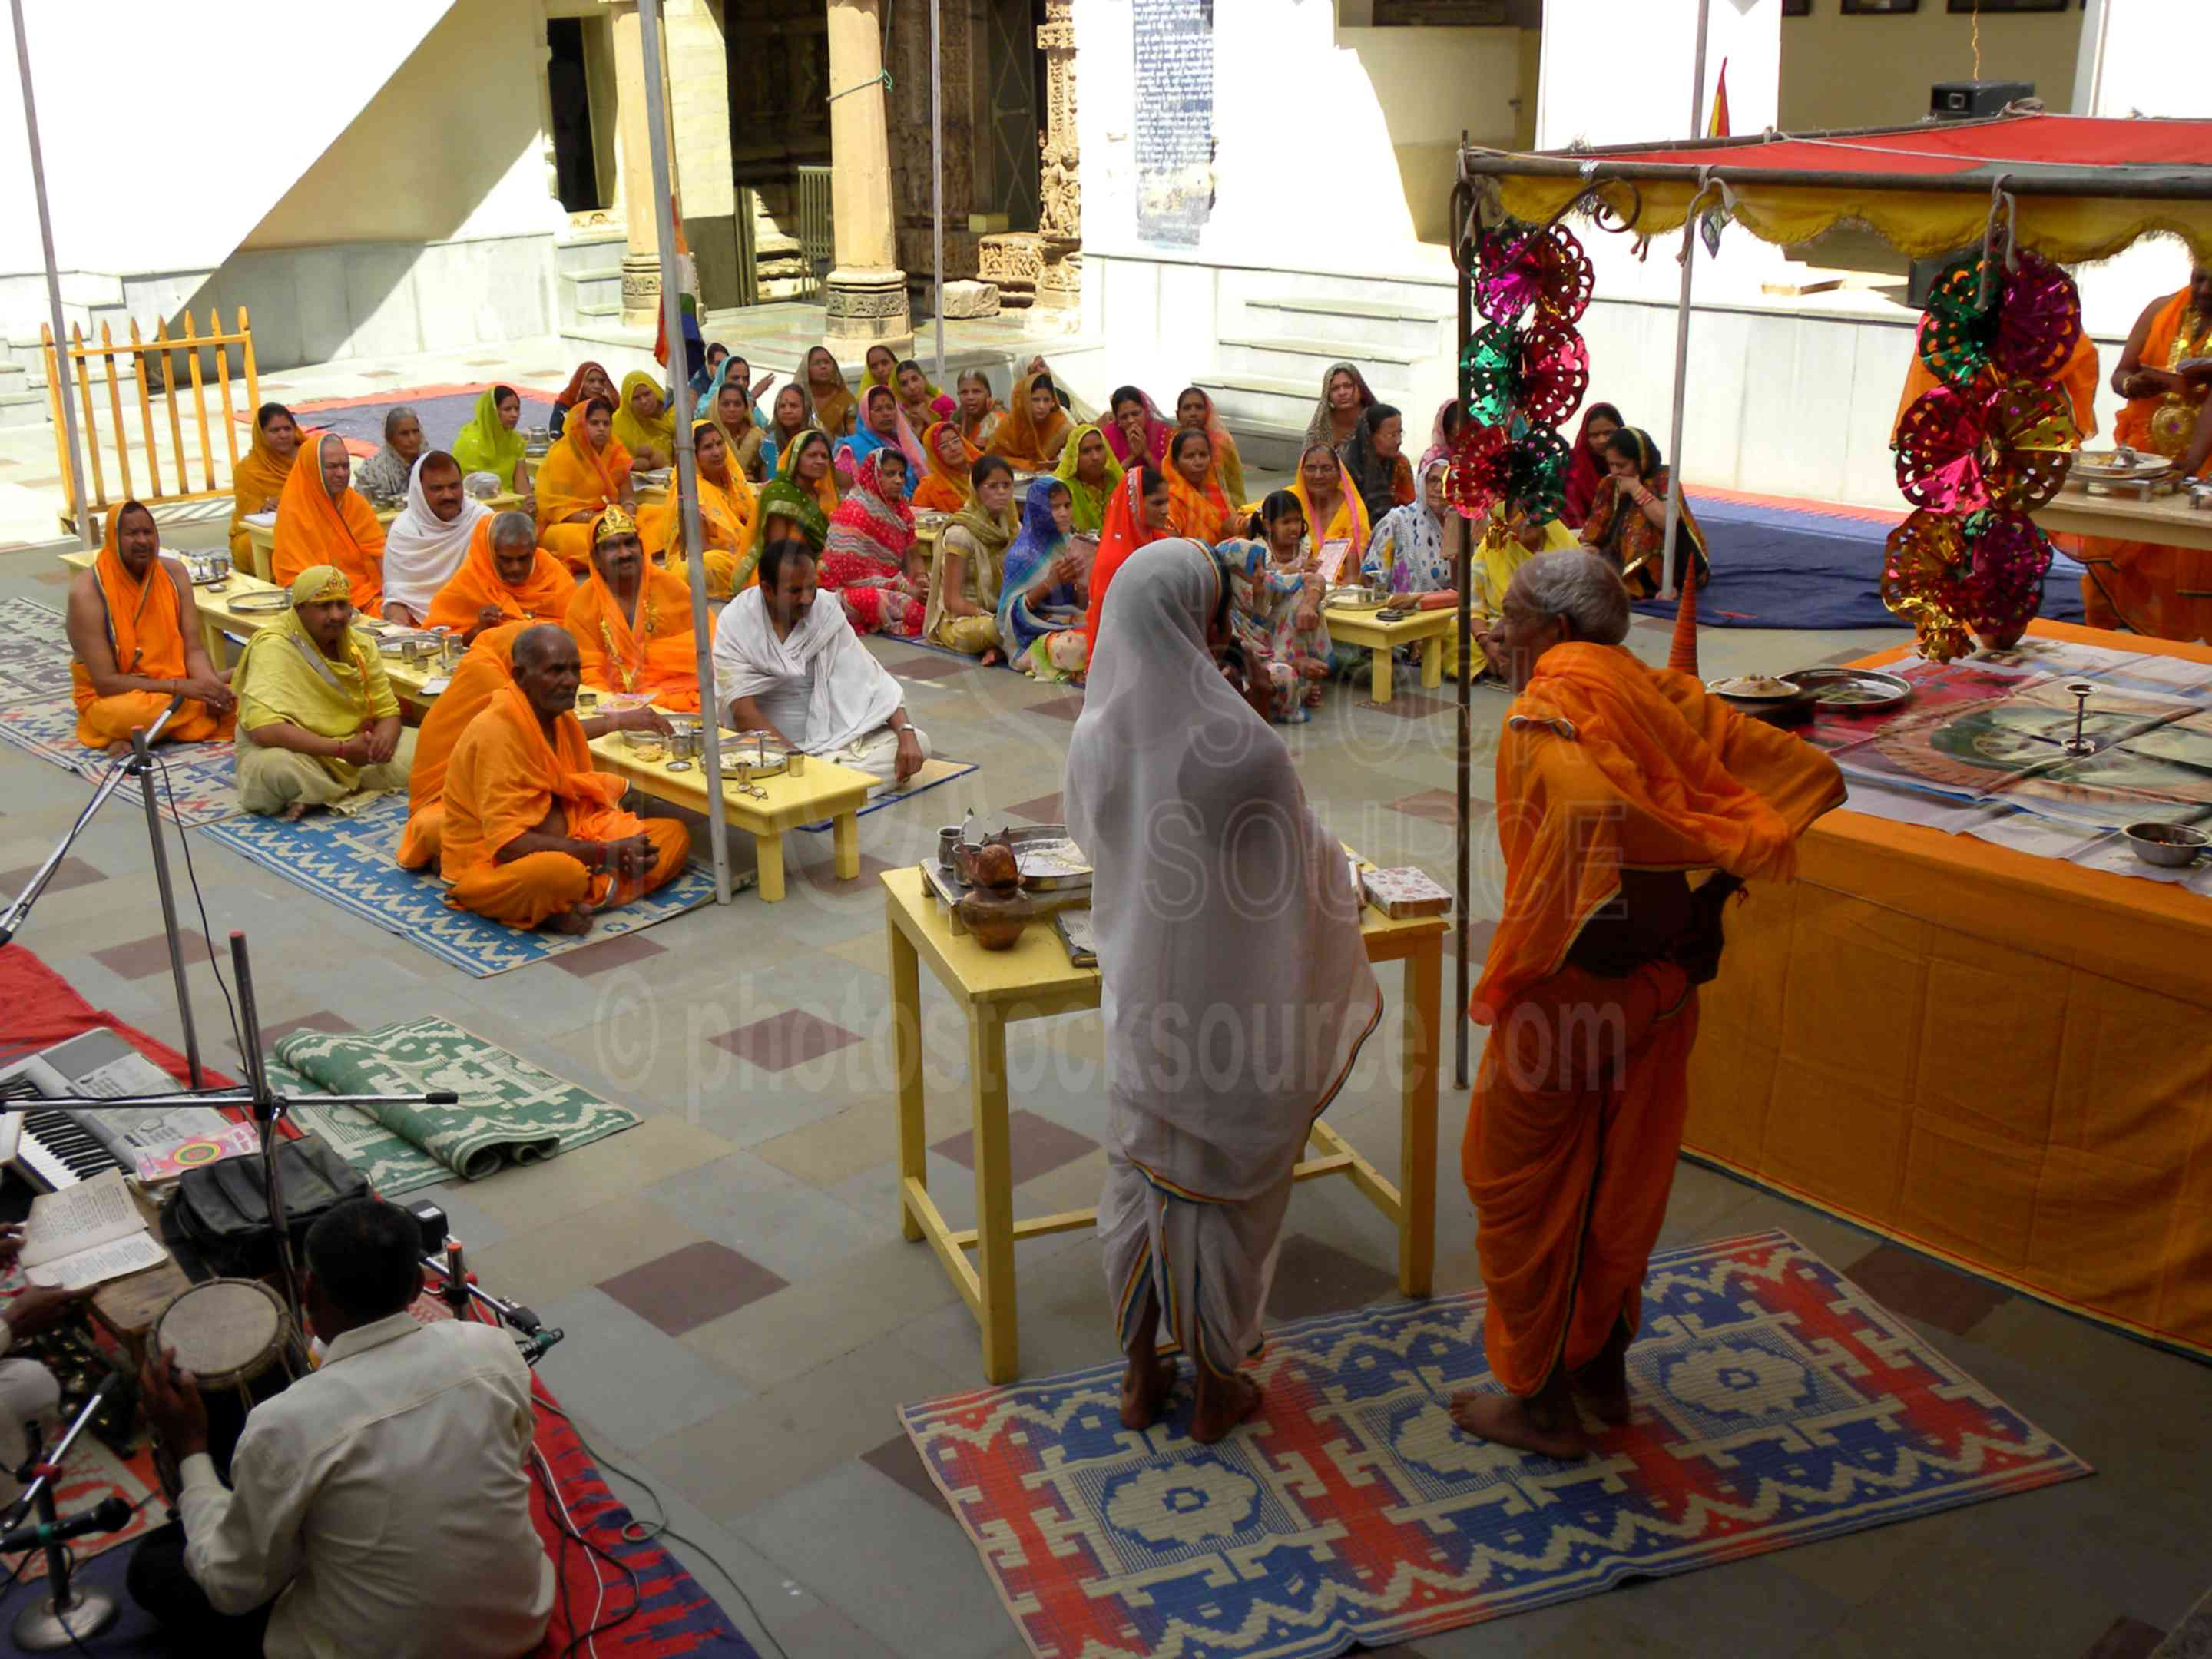 Shri Shantinath Ceremony,eastern group,temple,shrine,ceremony,hindu,religious,worship,worshipping,pray,praying,priests,architecture,ceremonies,temples